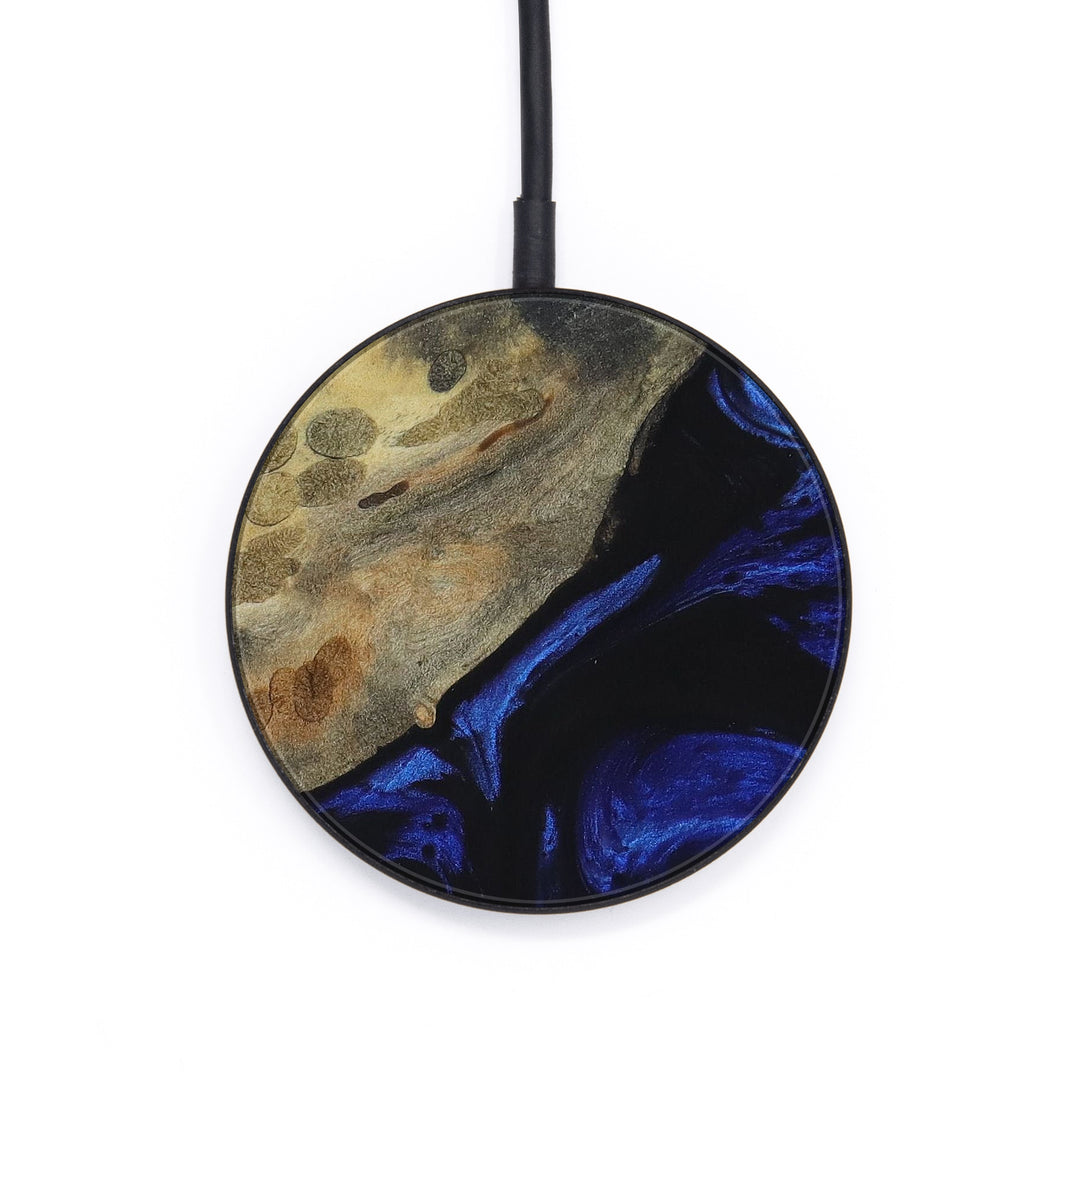 Circle Wood+Resin Wireless Charger - Julee (Dark Blue, 403834)